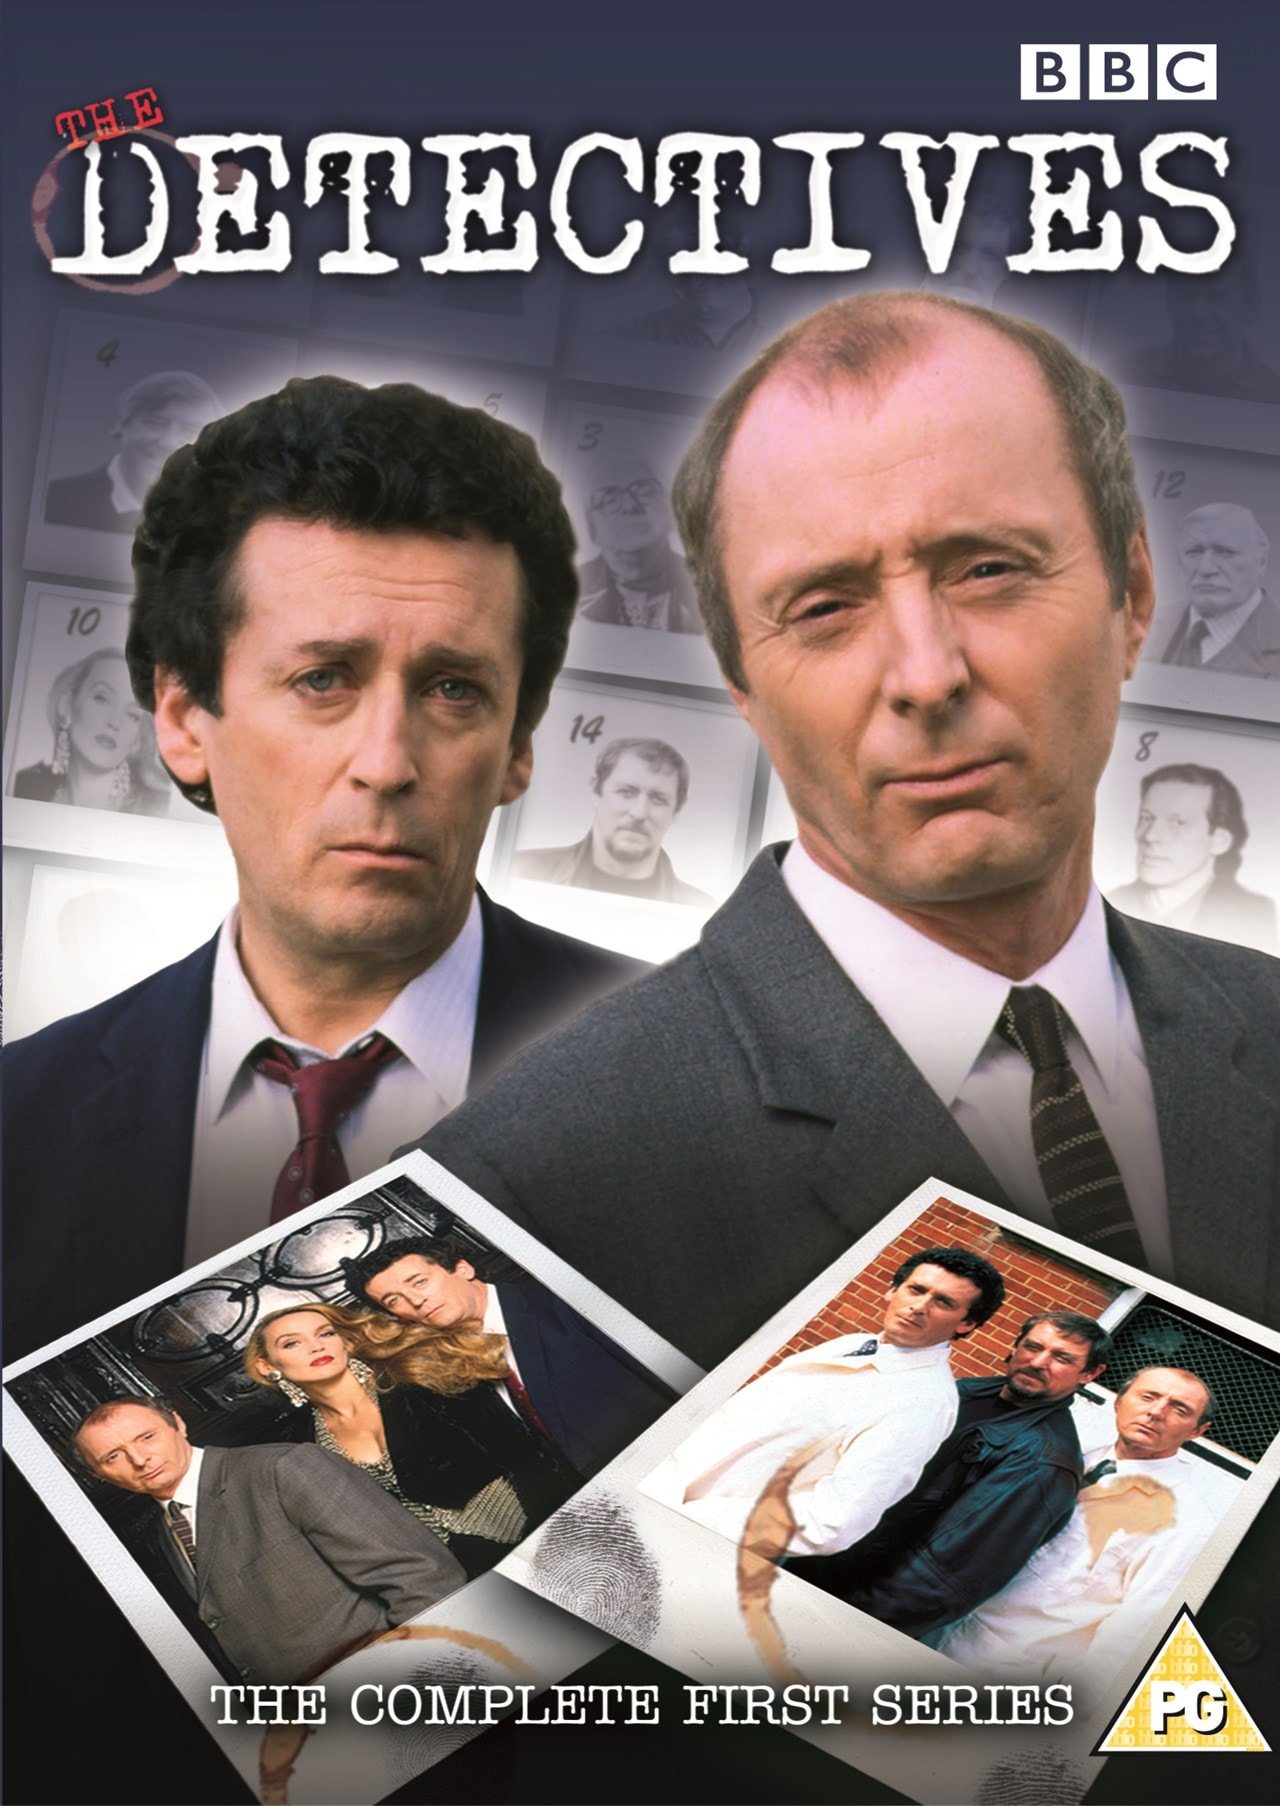 The Detectives: Series 1 - 1